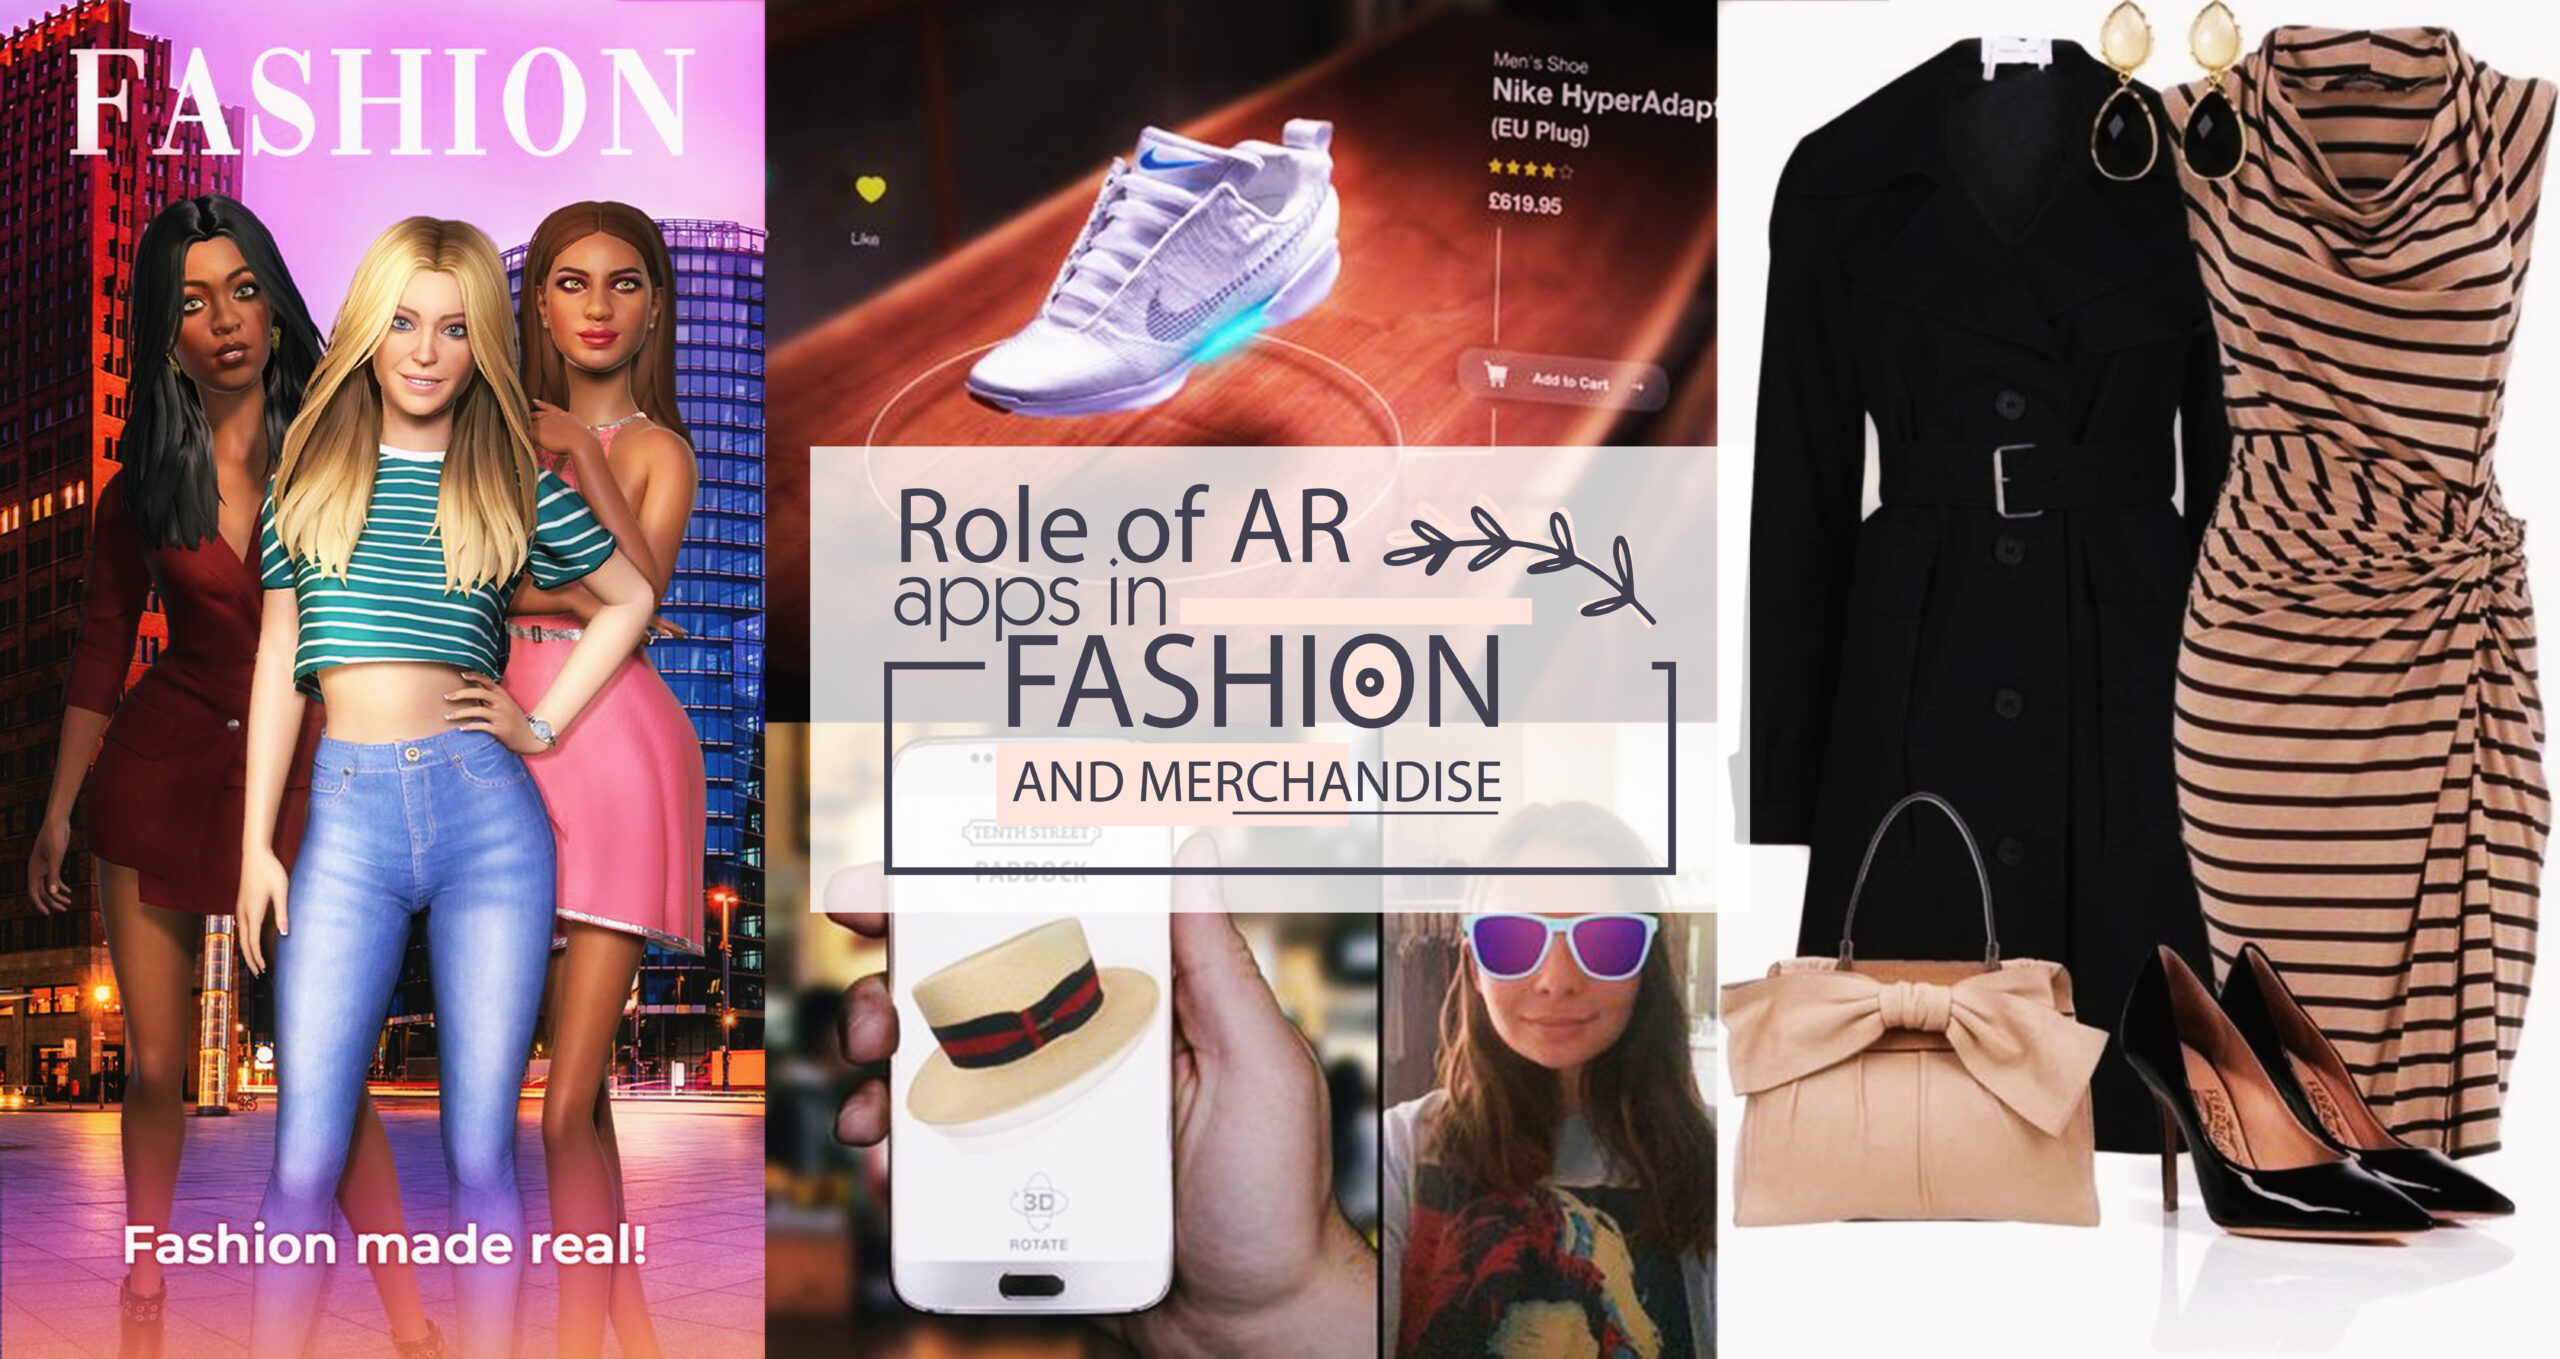 Role of AR apps in fashion and merchandise